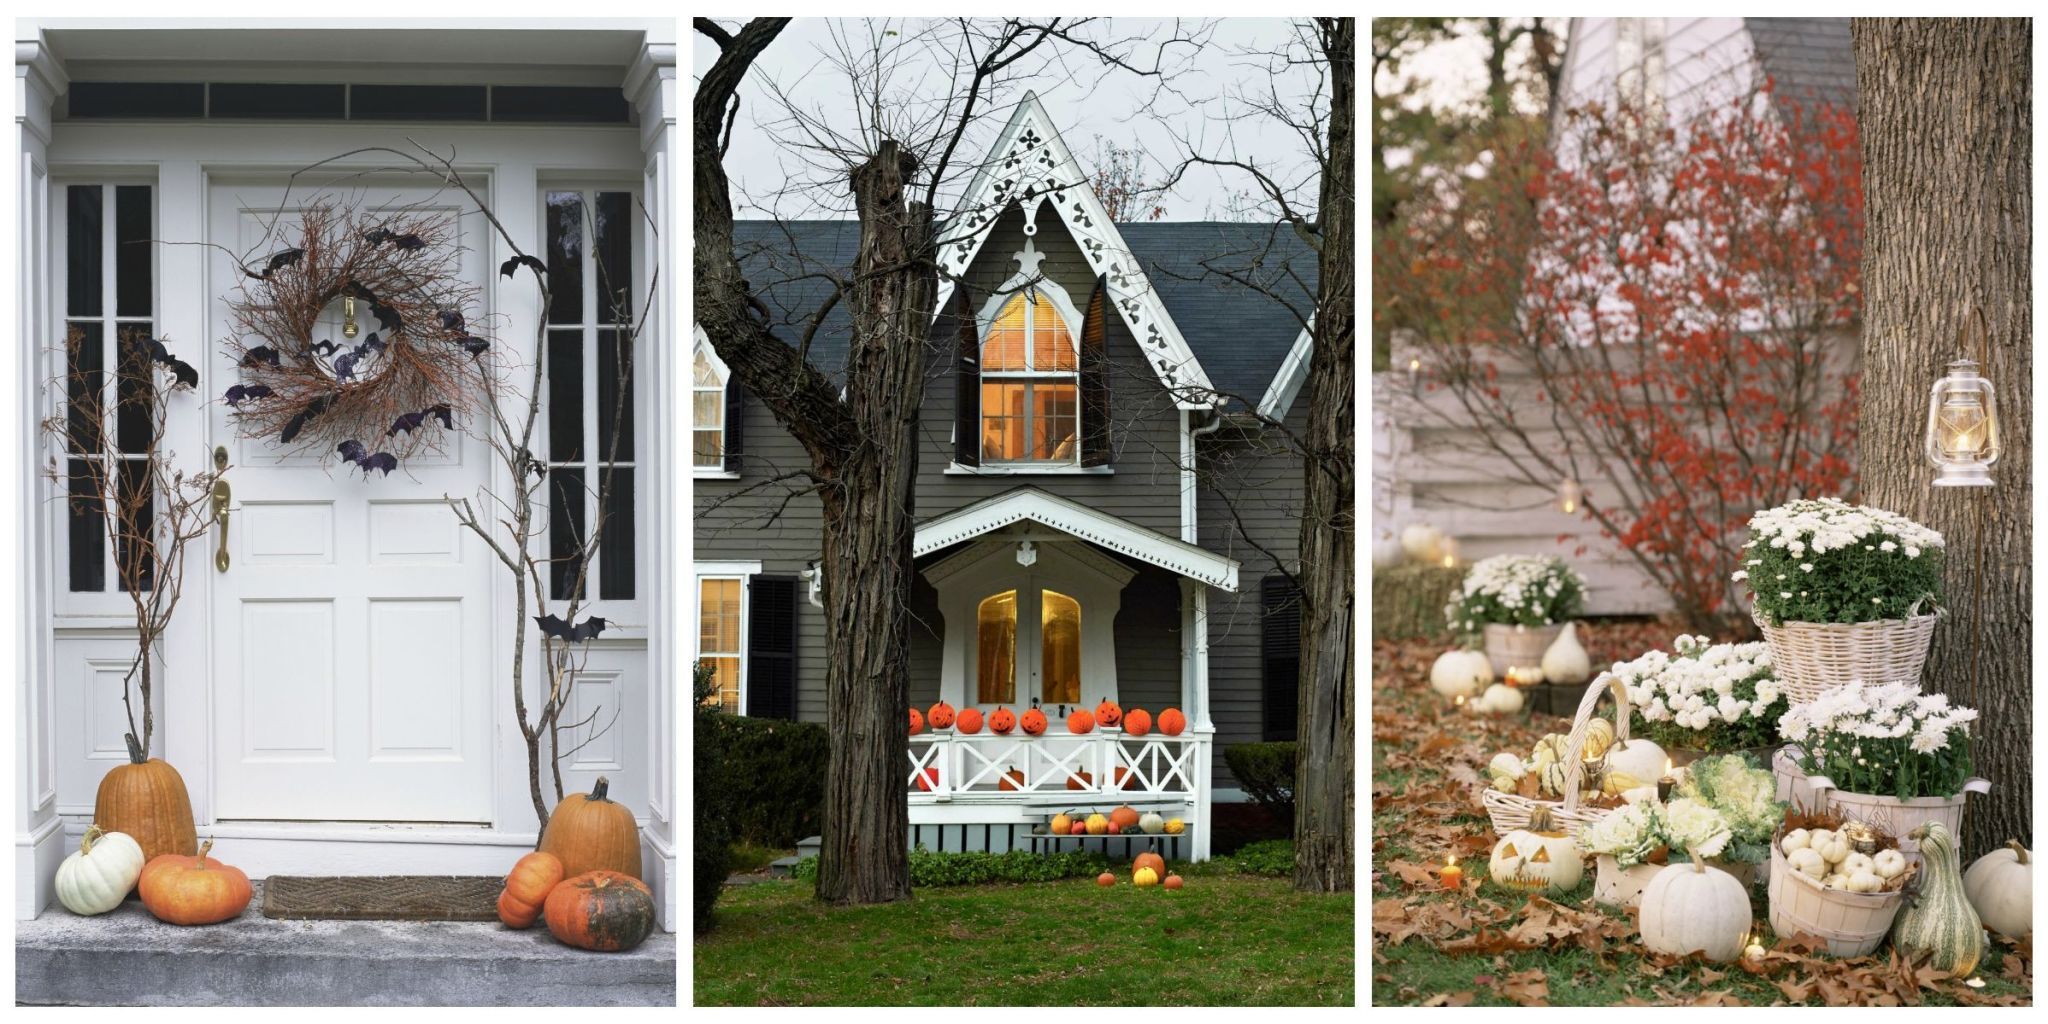 Halloween house decoration ideas for outdoors